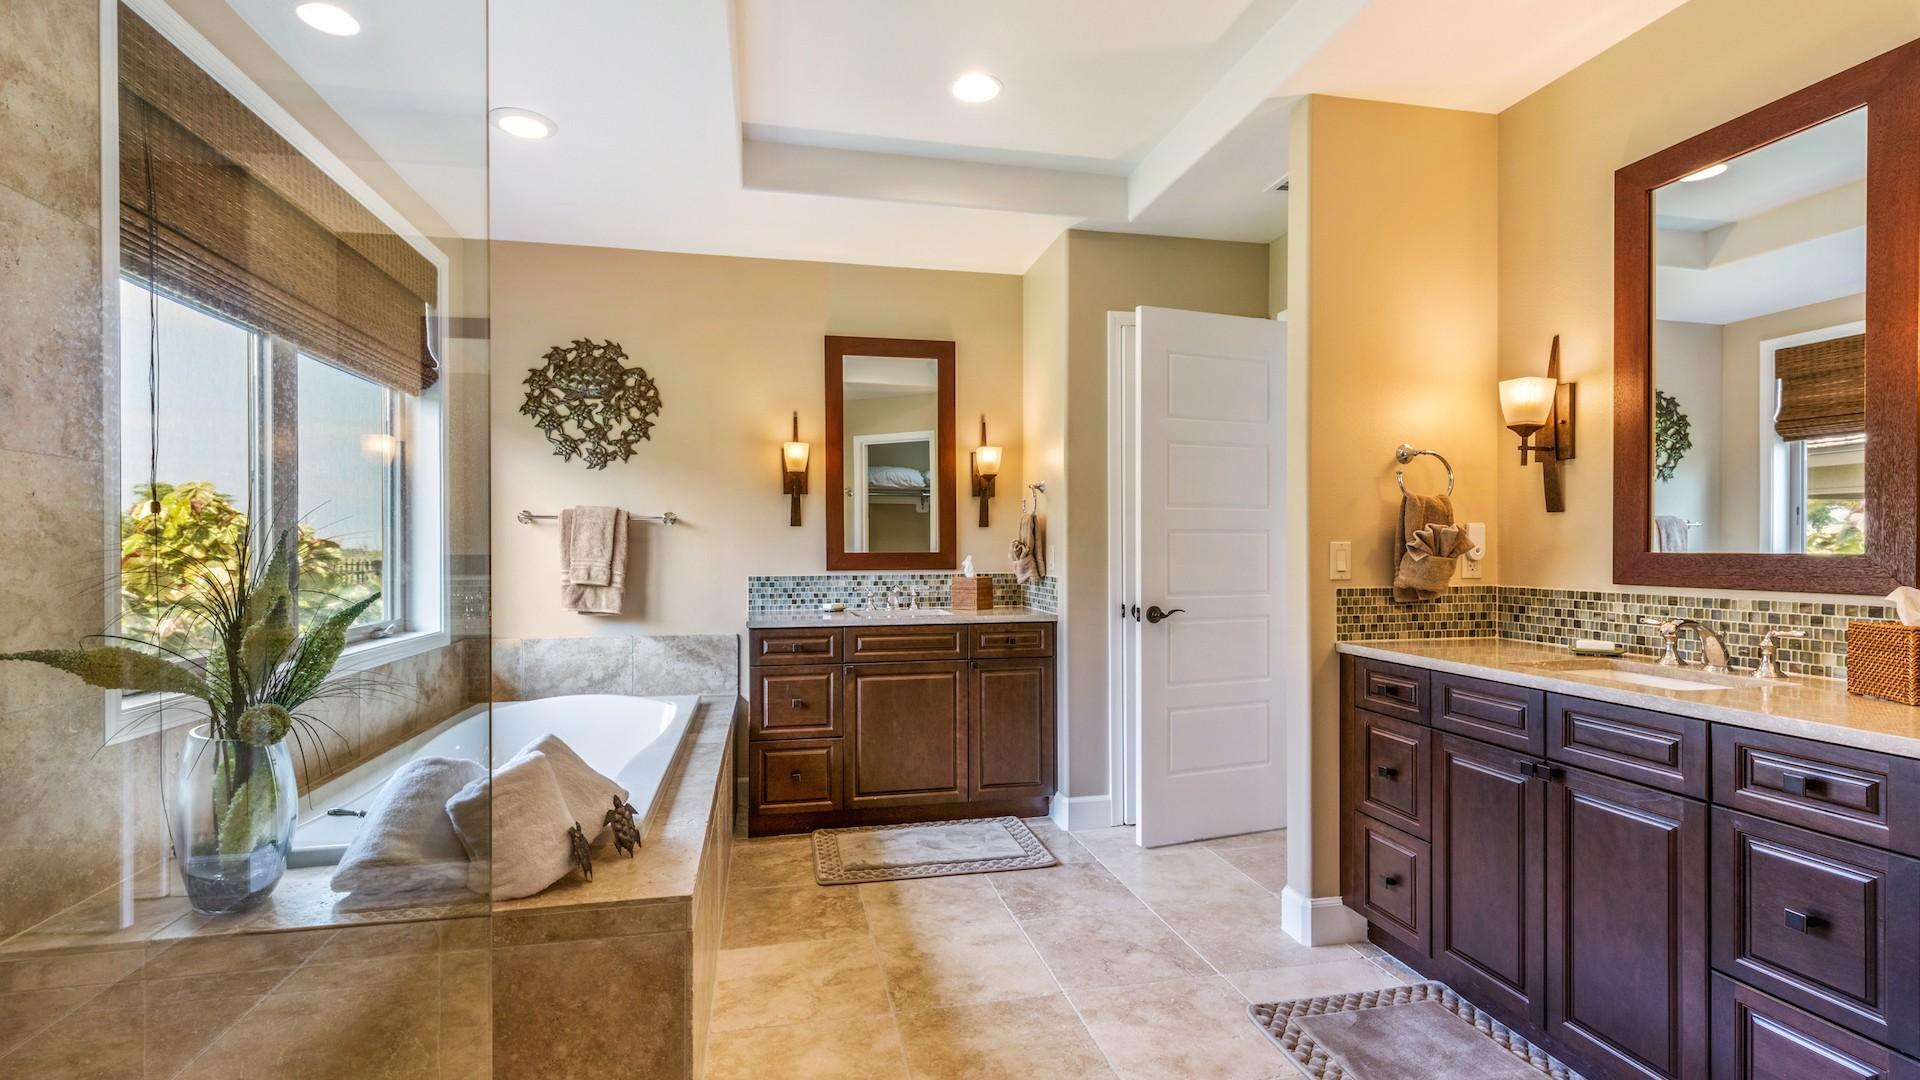 Master bath, with dual sinks, large soaking tub, and separate walk-in shower.